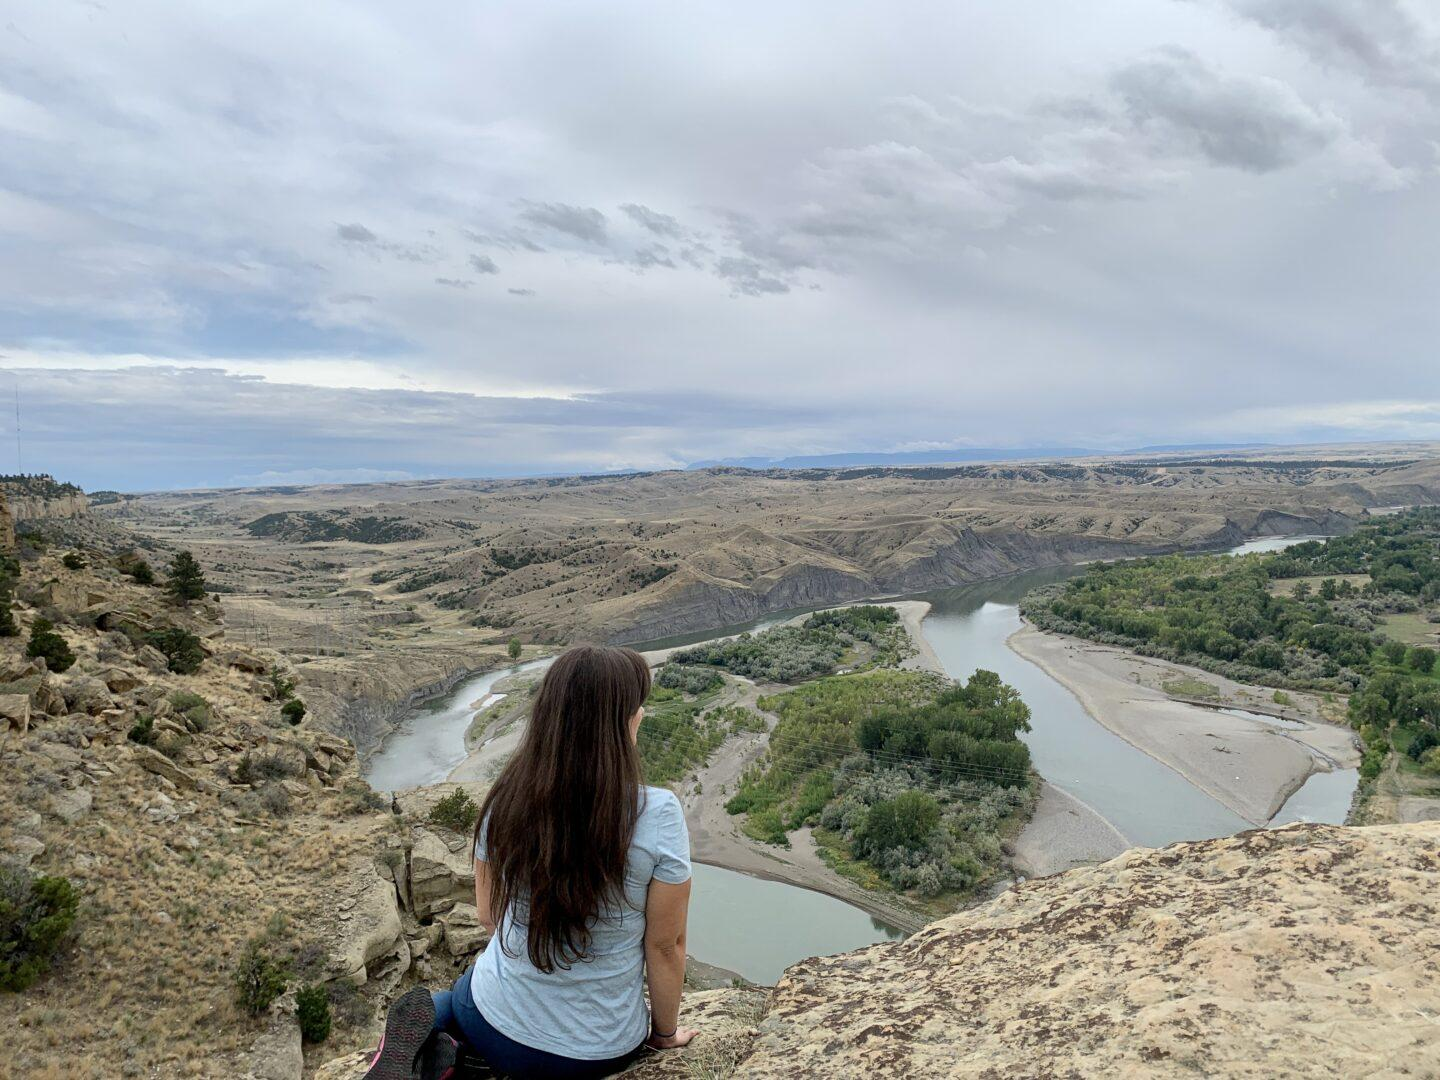 On a hike overlooking the Yellowstone River